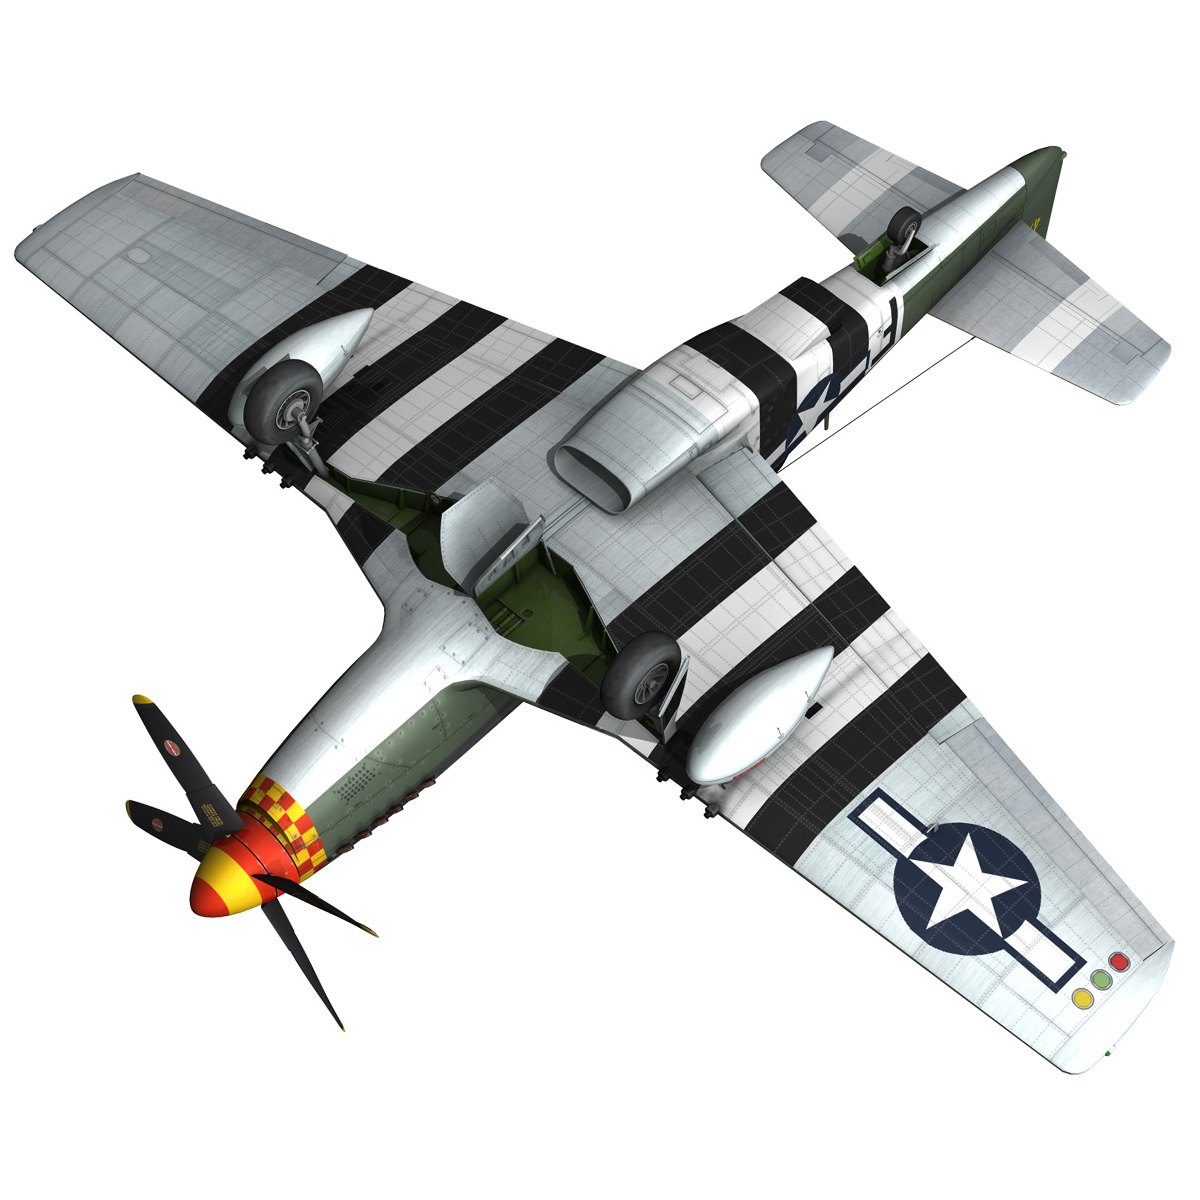 north american p-51d mustang – speedball alice 3d model fbx c4d lwo obj 280325